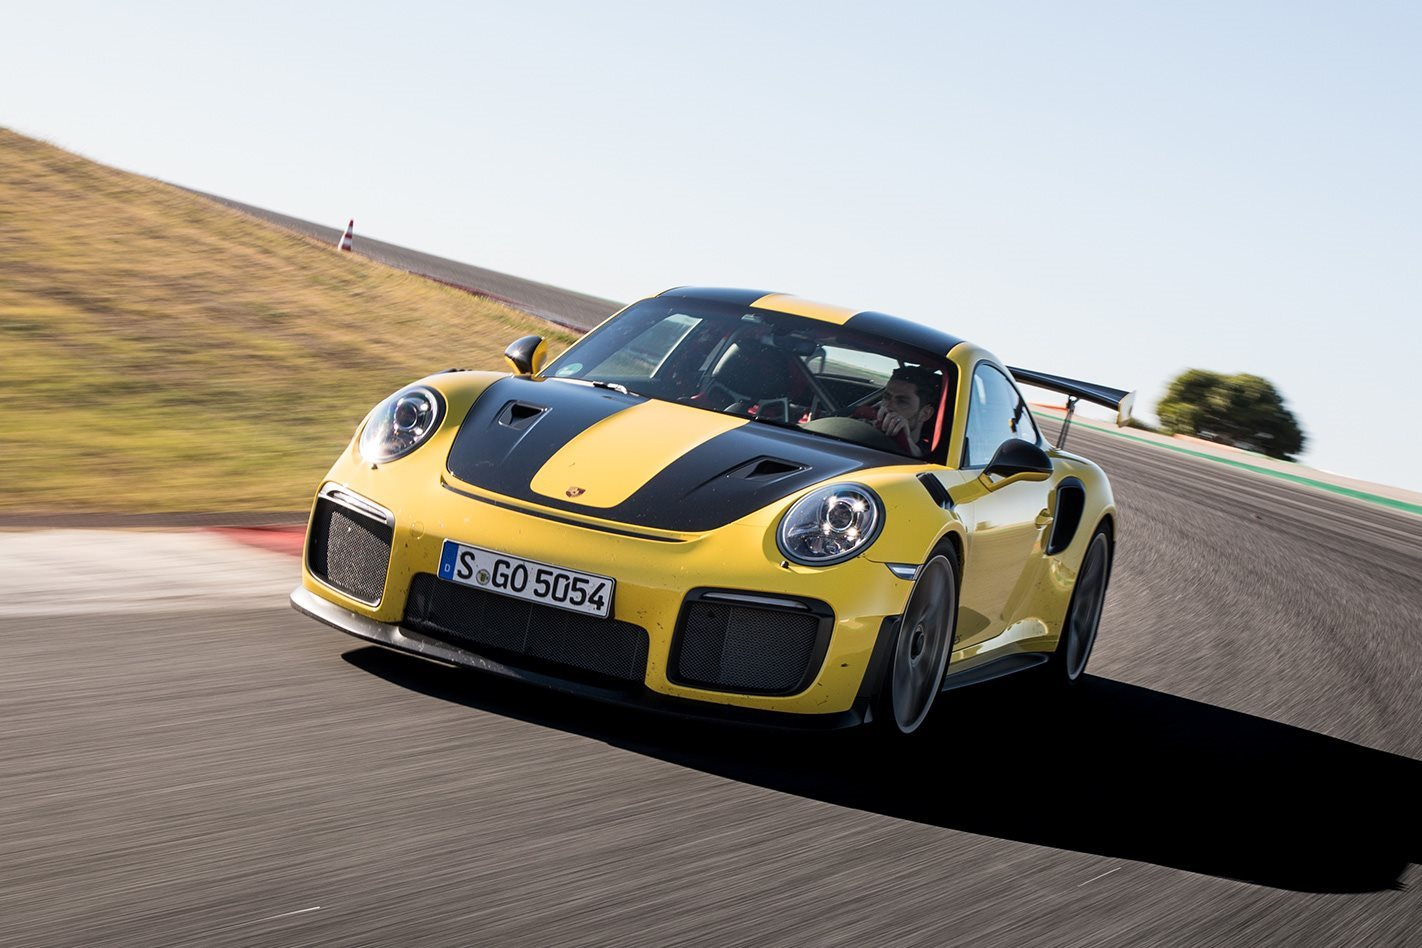 Porsche GT2 RS goes back into production after cargo ship